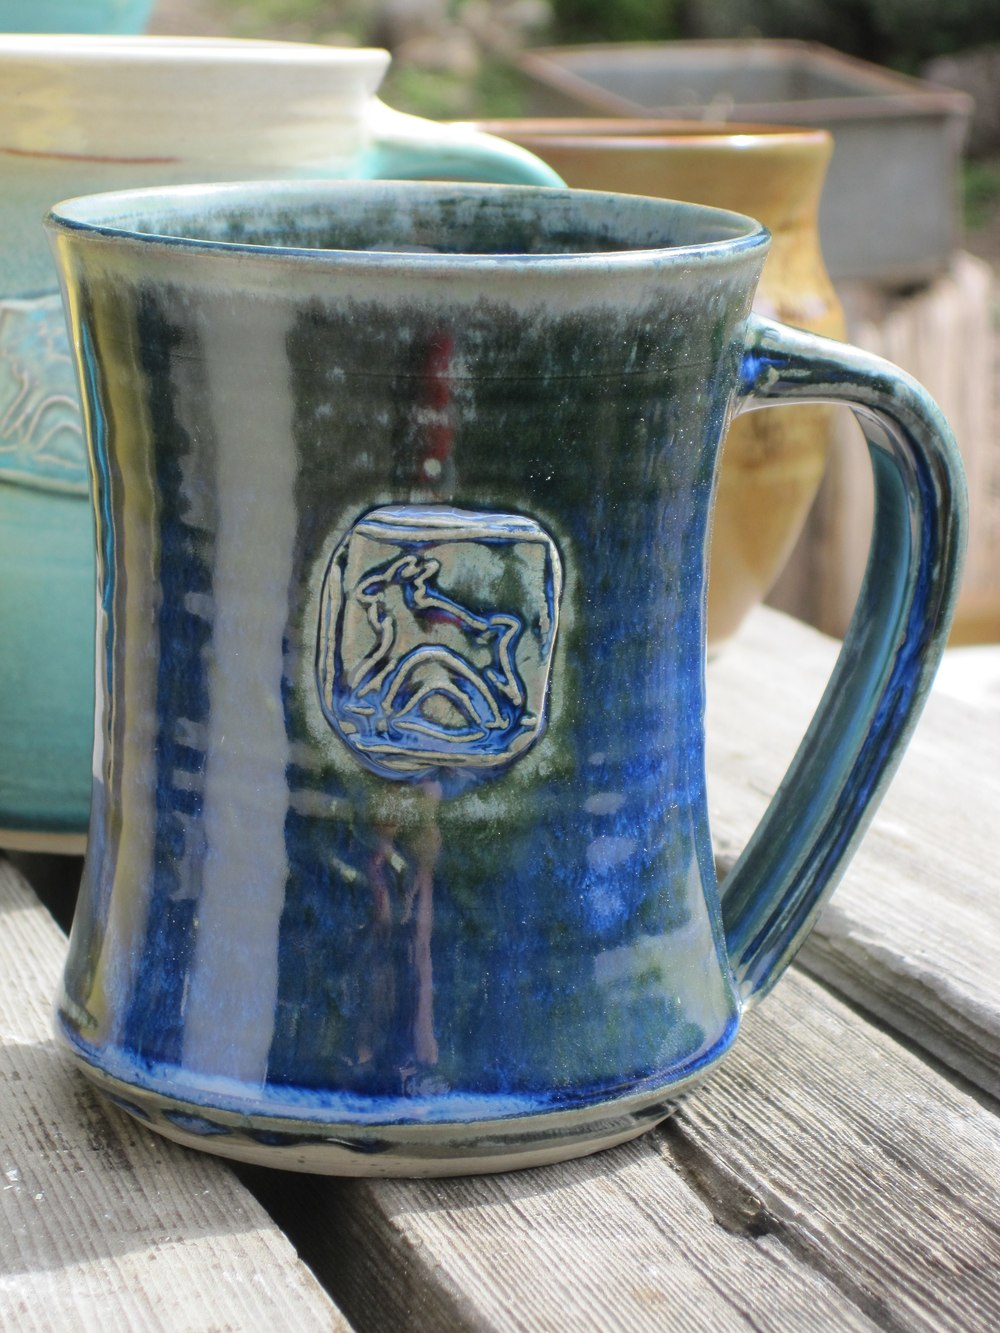 Jumpy goat mugs